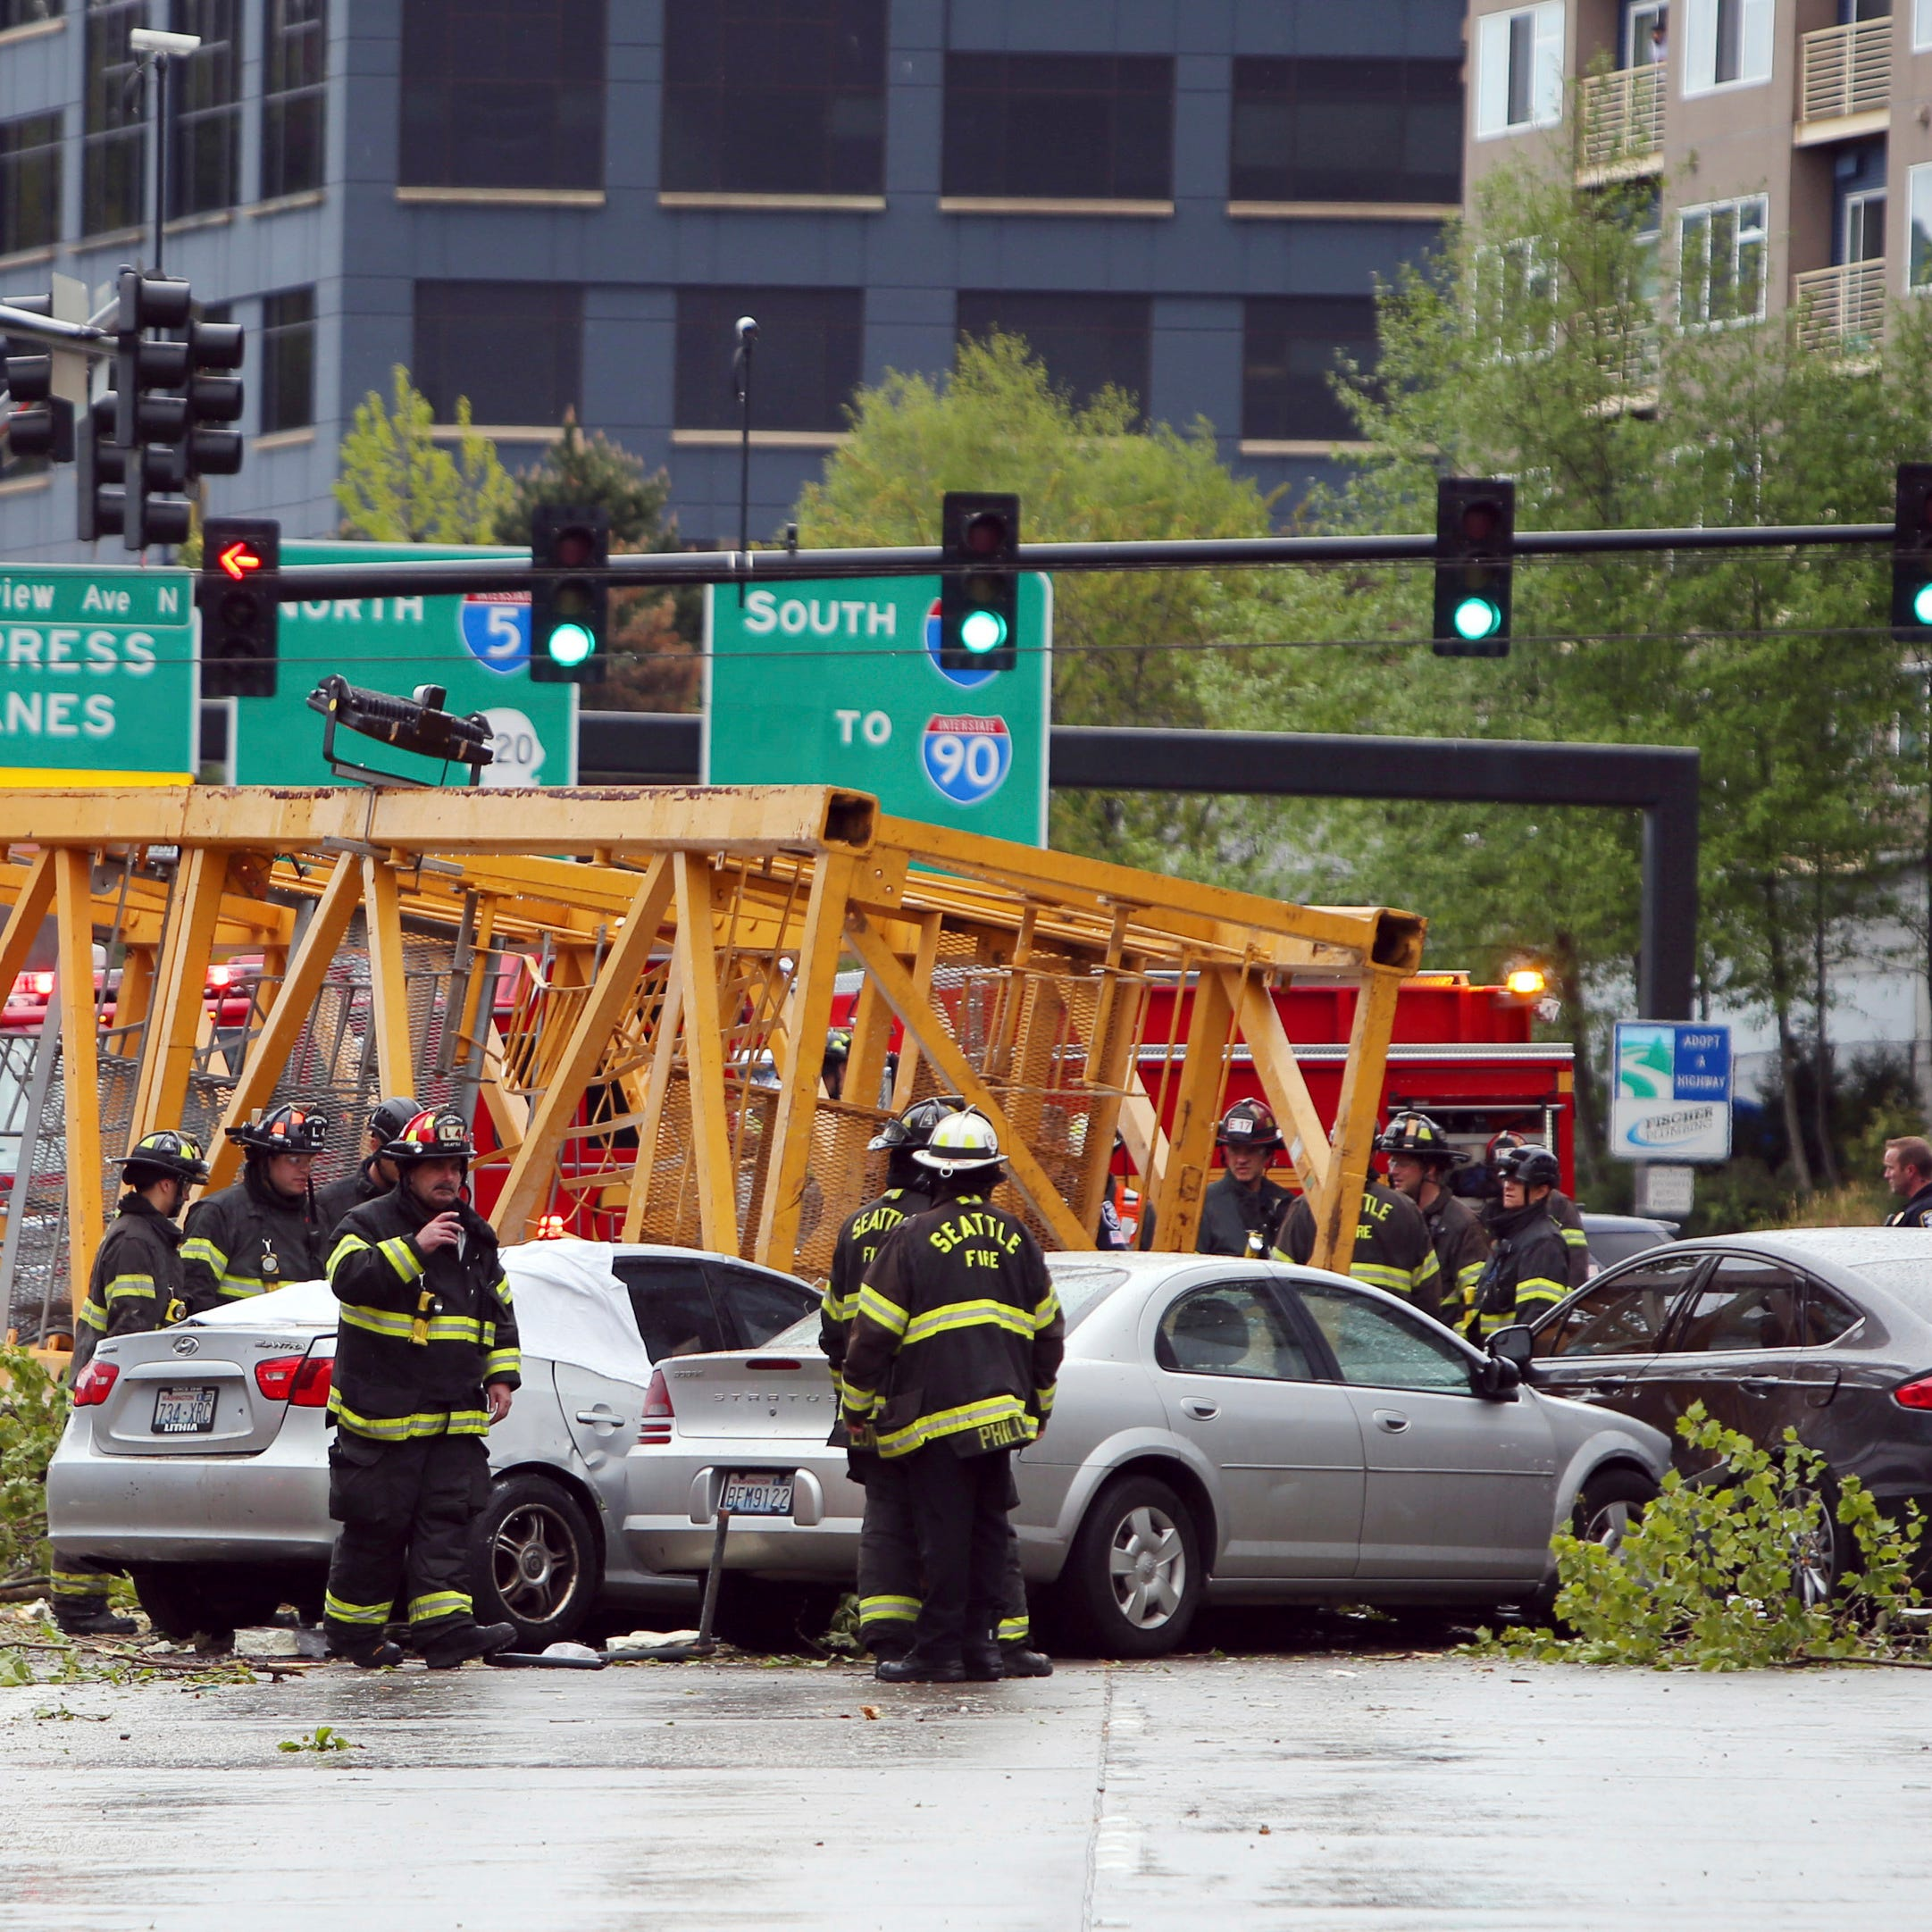 4 dead after construction crane collapses in Seattle